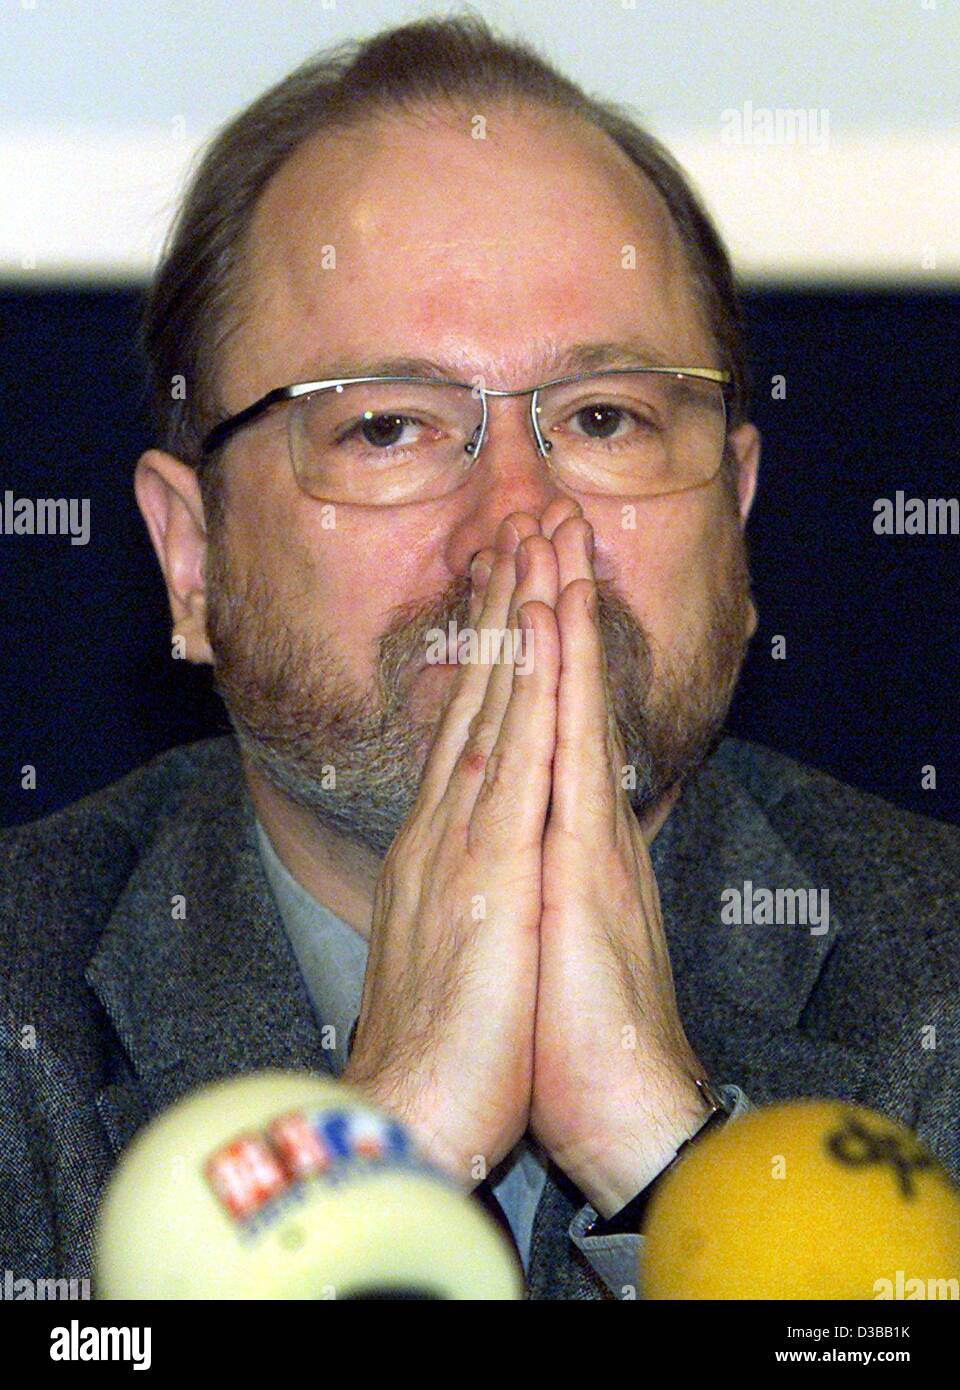 (dpa) - Jan Philipp Reemtsma, initiator of the exhibition on crimes of the Wehrmacht, pictured at a press conference, - Stock Image